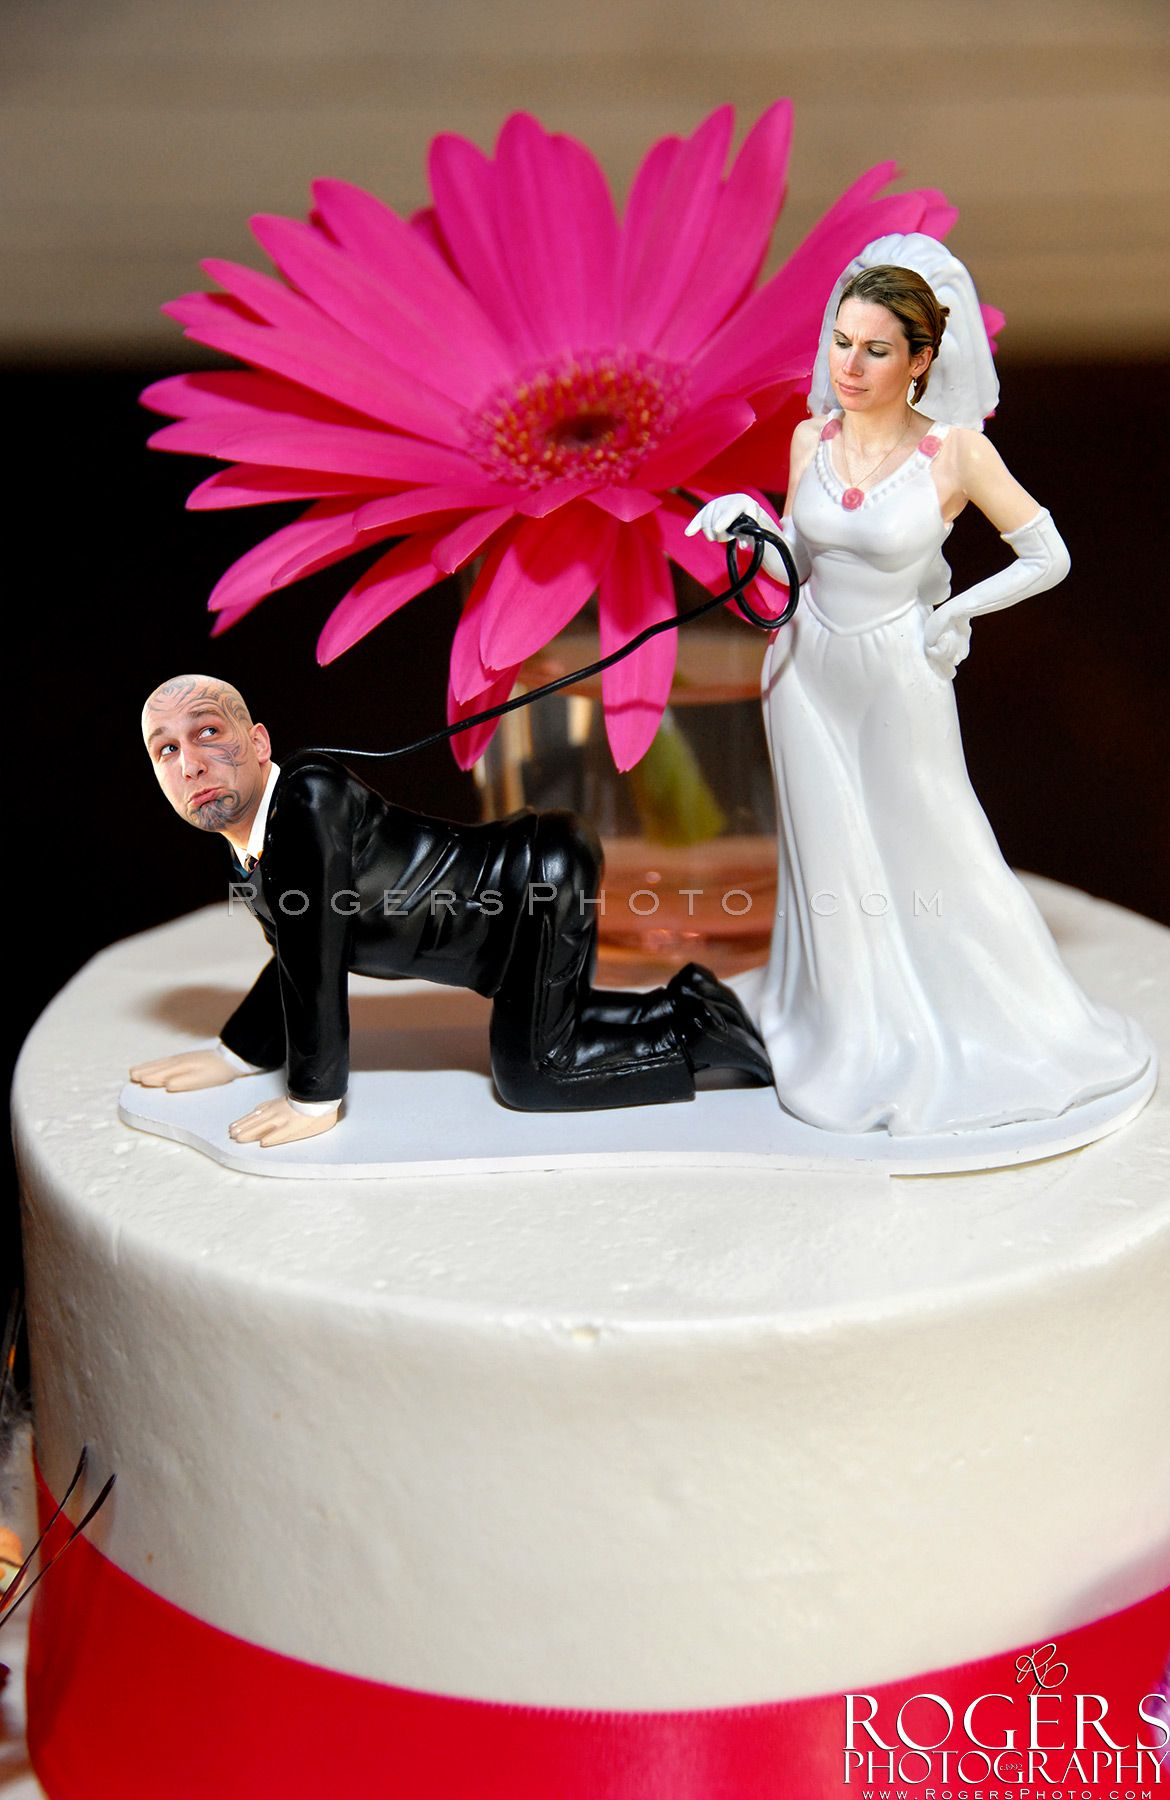 """One of my favorite cake toppers (with a little """"magic"""" on our end)! Rogers Photography"""